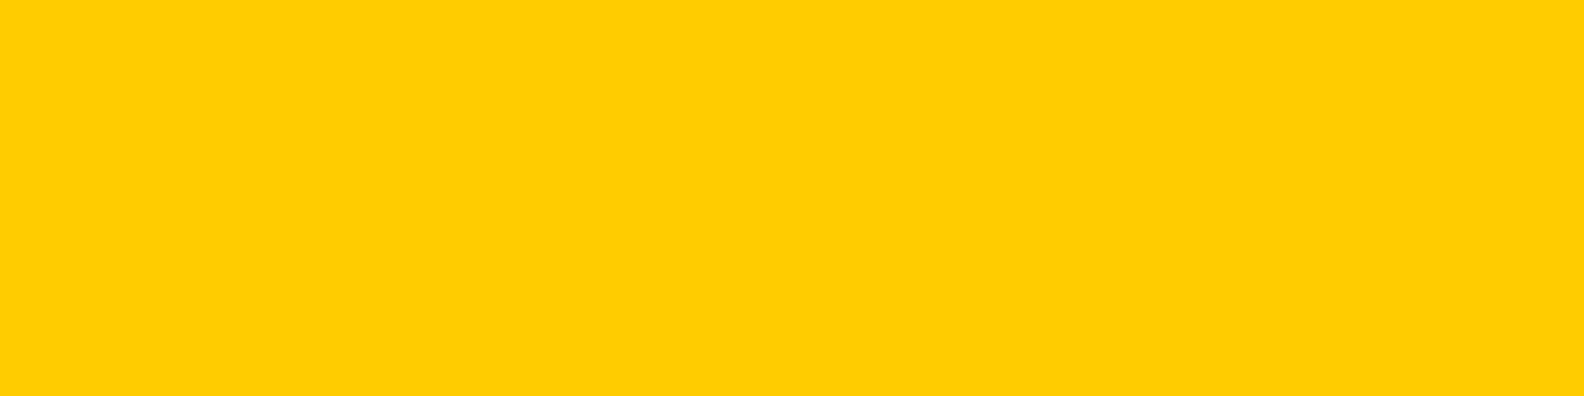 1584x396 Tangerine Yellow Solid Color Background